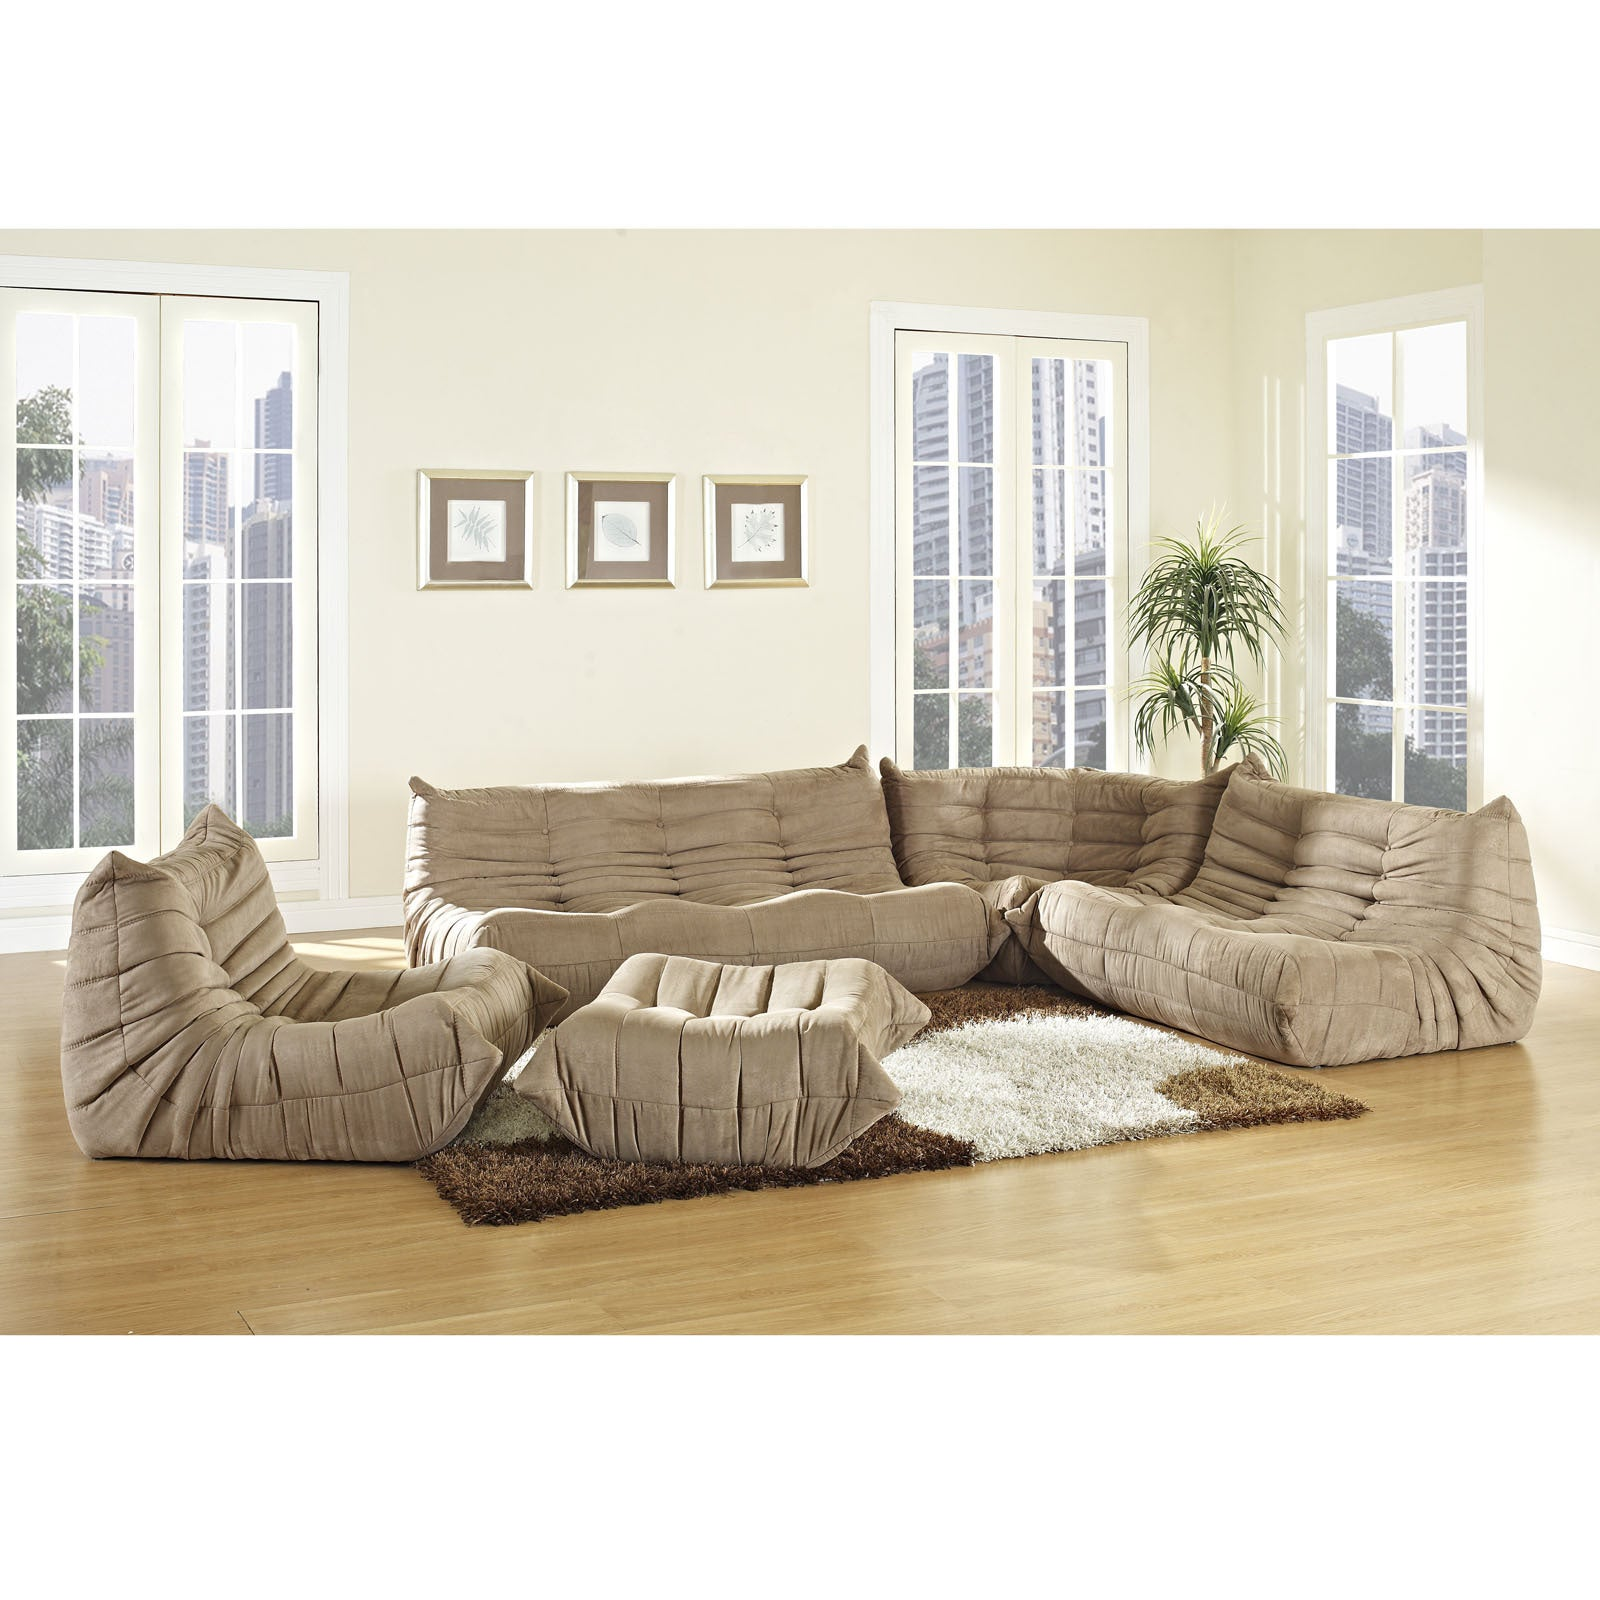 Waverunner Modular Sectional Sofa Set 5 Piece Free Shipping Today 8408917